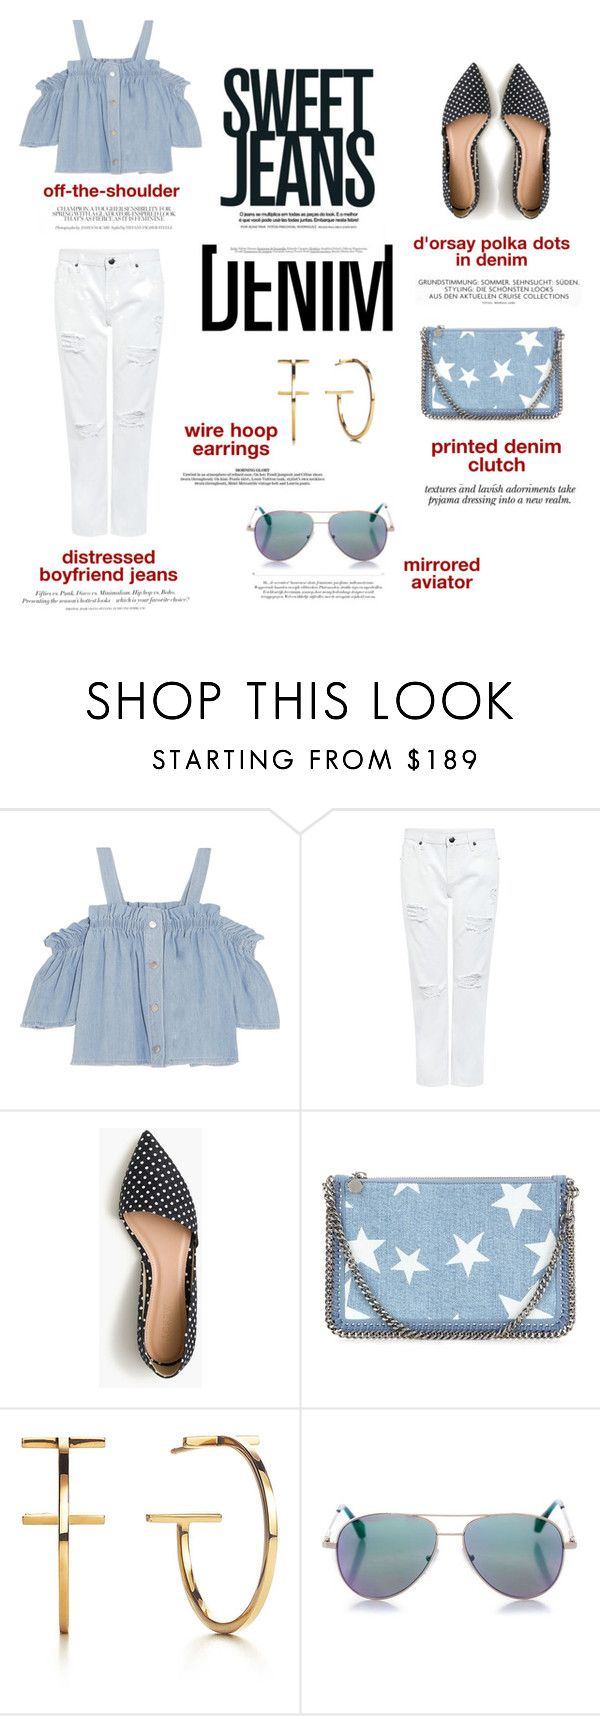 """""""head to toe in denim"""" by cheetakat12 ❤ liked on Polyvore featuring Steve J & Yoni P, Edit, H&M, J.Crew, STELLA McCARTNEY, Nicole, Cutler and Gross and Denimondenim"""